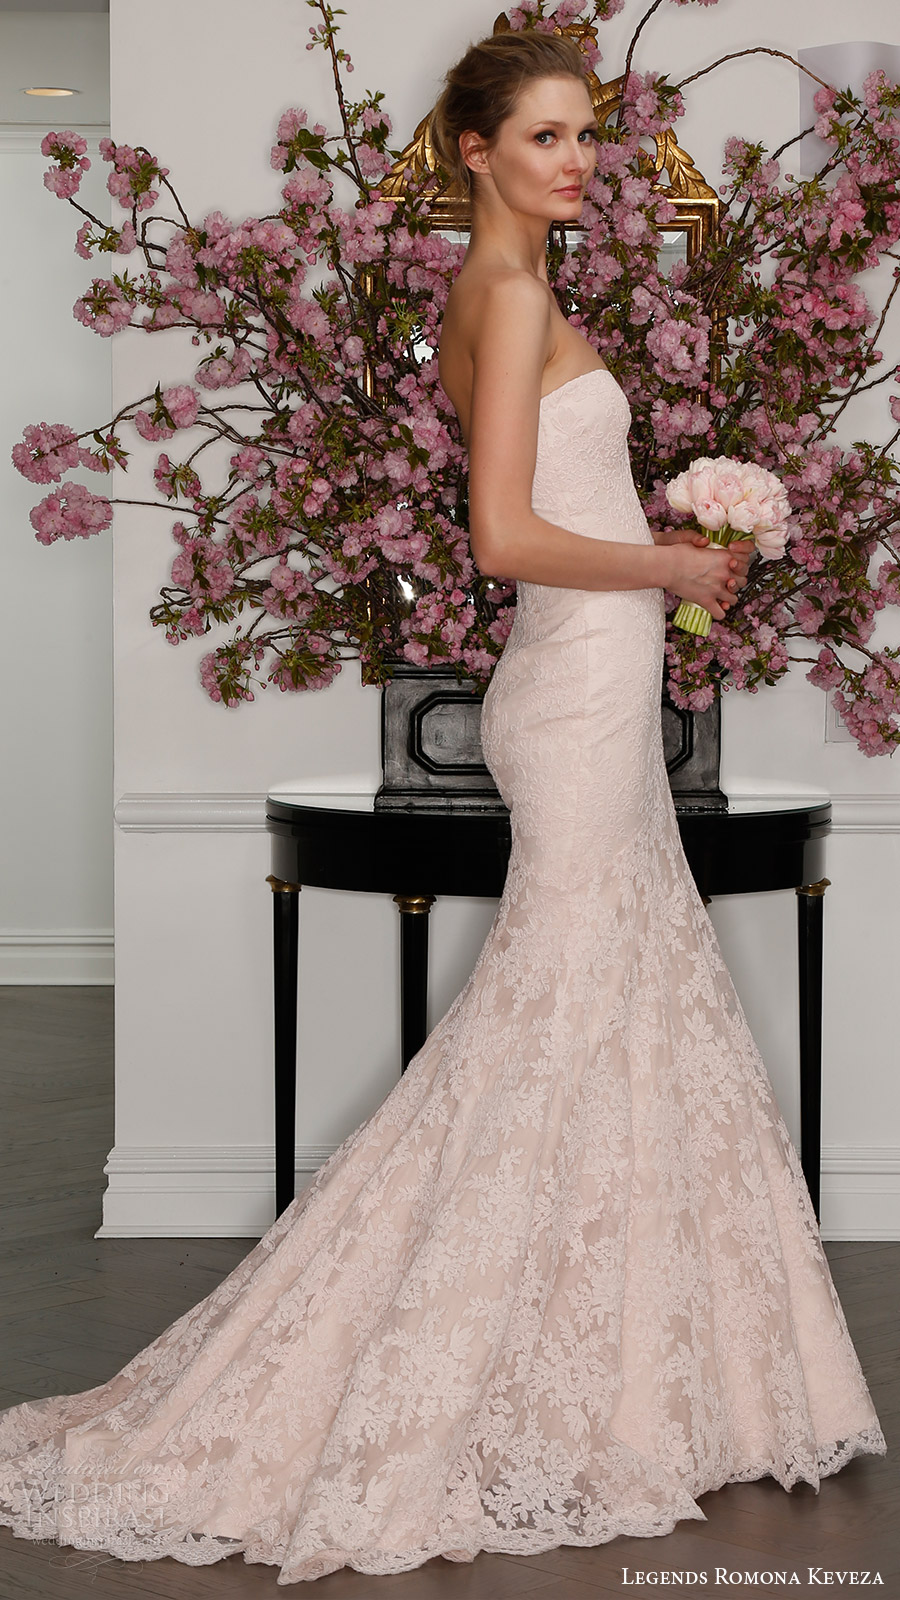 legends romona keveza bridal spring 2017 strapless sweetheart lace trumpet wedding dress (l7125) bv train blush color